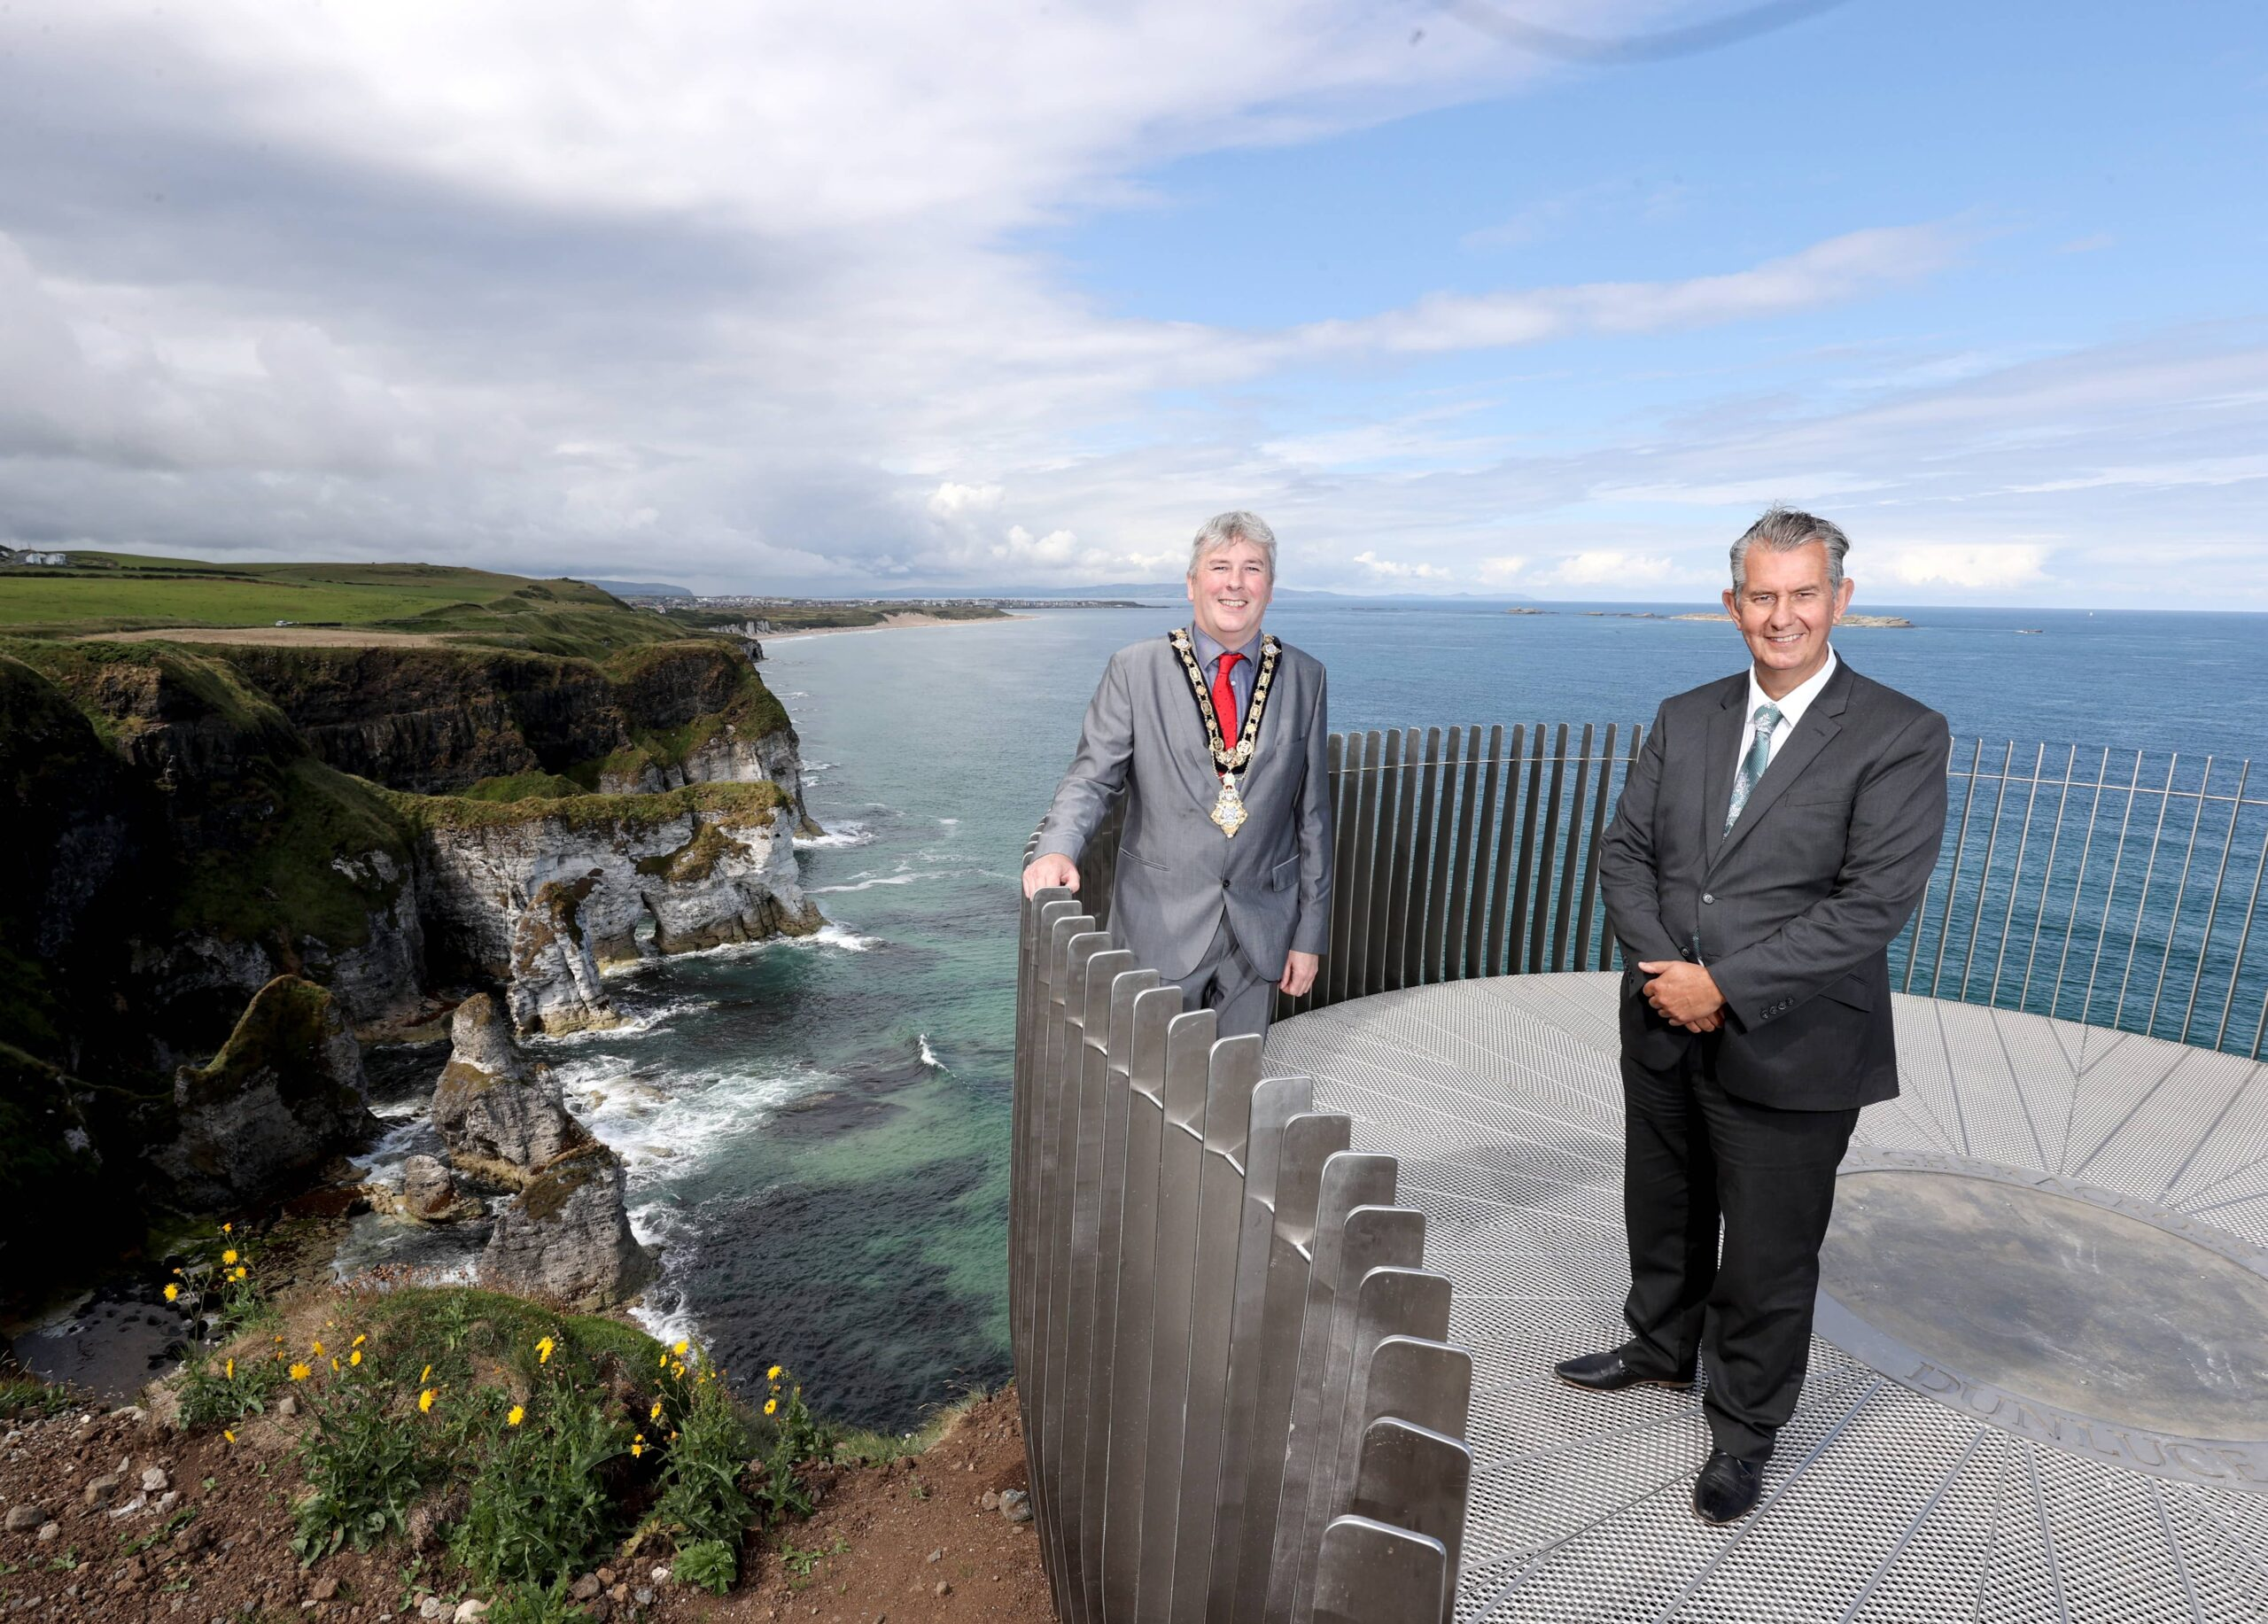 Minister opens new Viewpoint during visit to north Antrim coast - Newry Times - newry news facebook